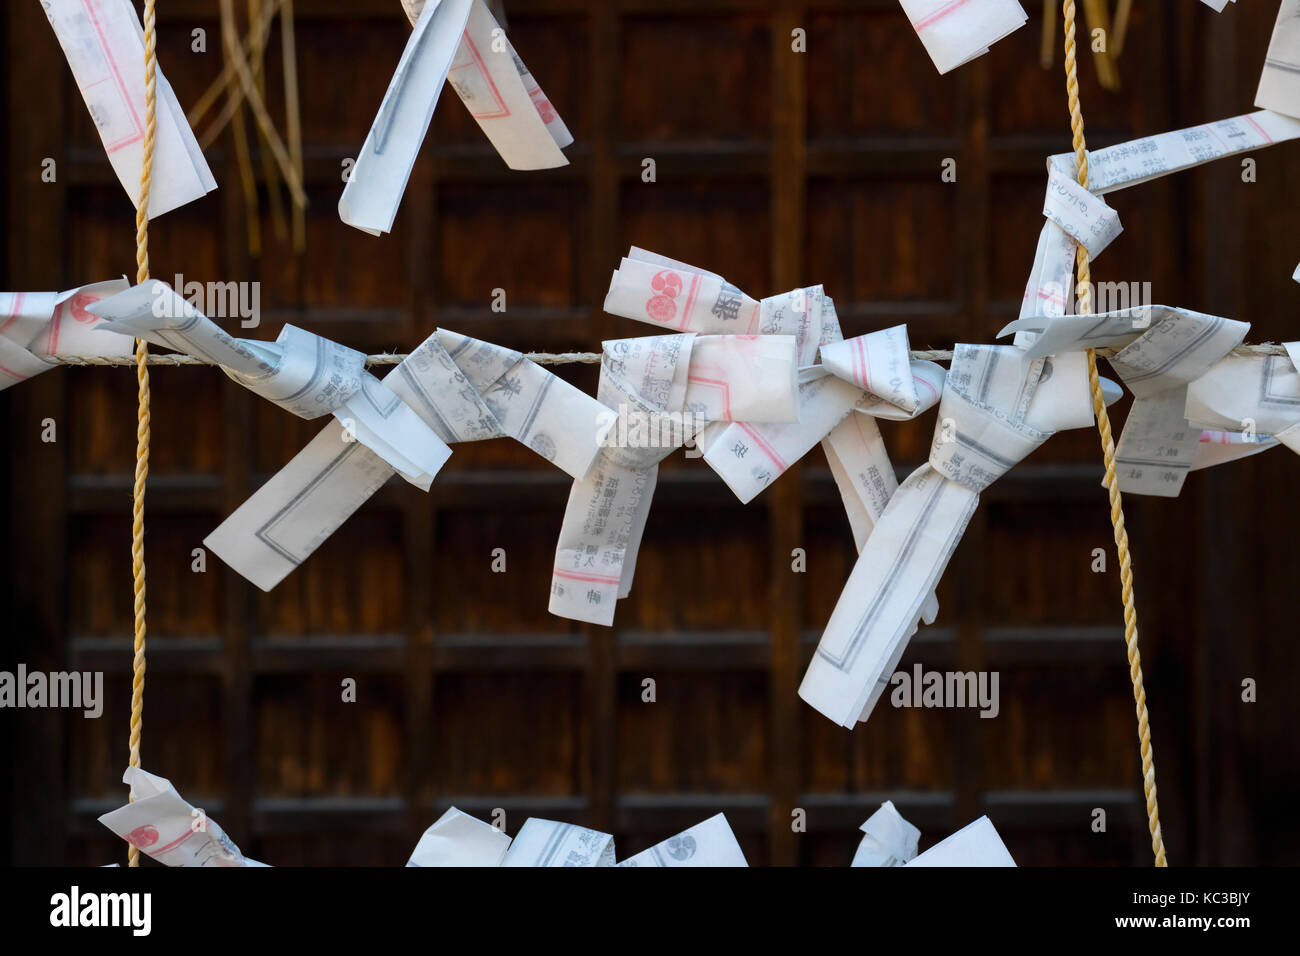 Kyoto, Japan - May 18, 2017: Paper prayers and wishes tied on a rope at the Yasaka jinja shrine in Kyoto - Stock Image